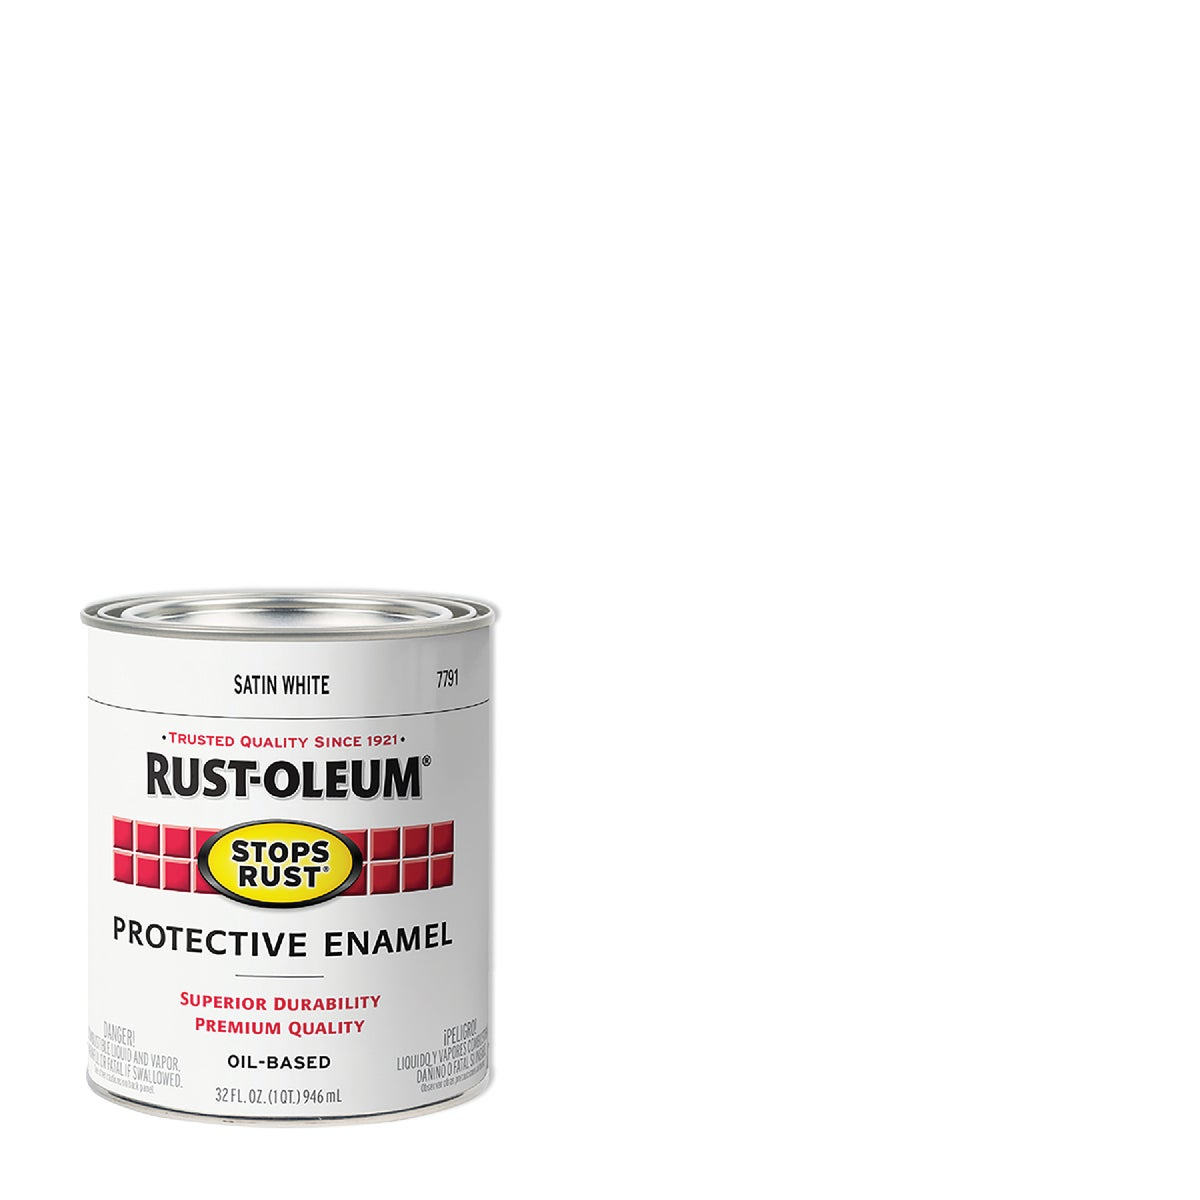 SATIN WHITE ENAMEL - 7791502 by Rustoleum